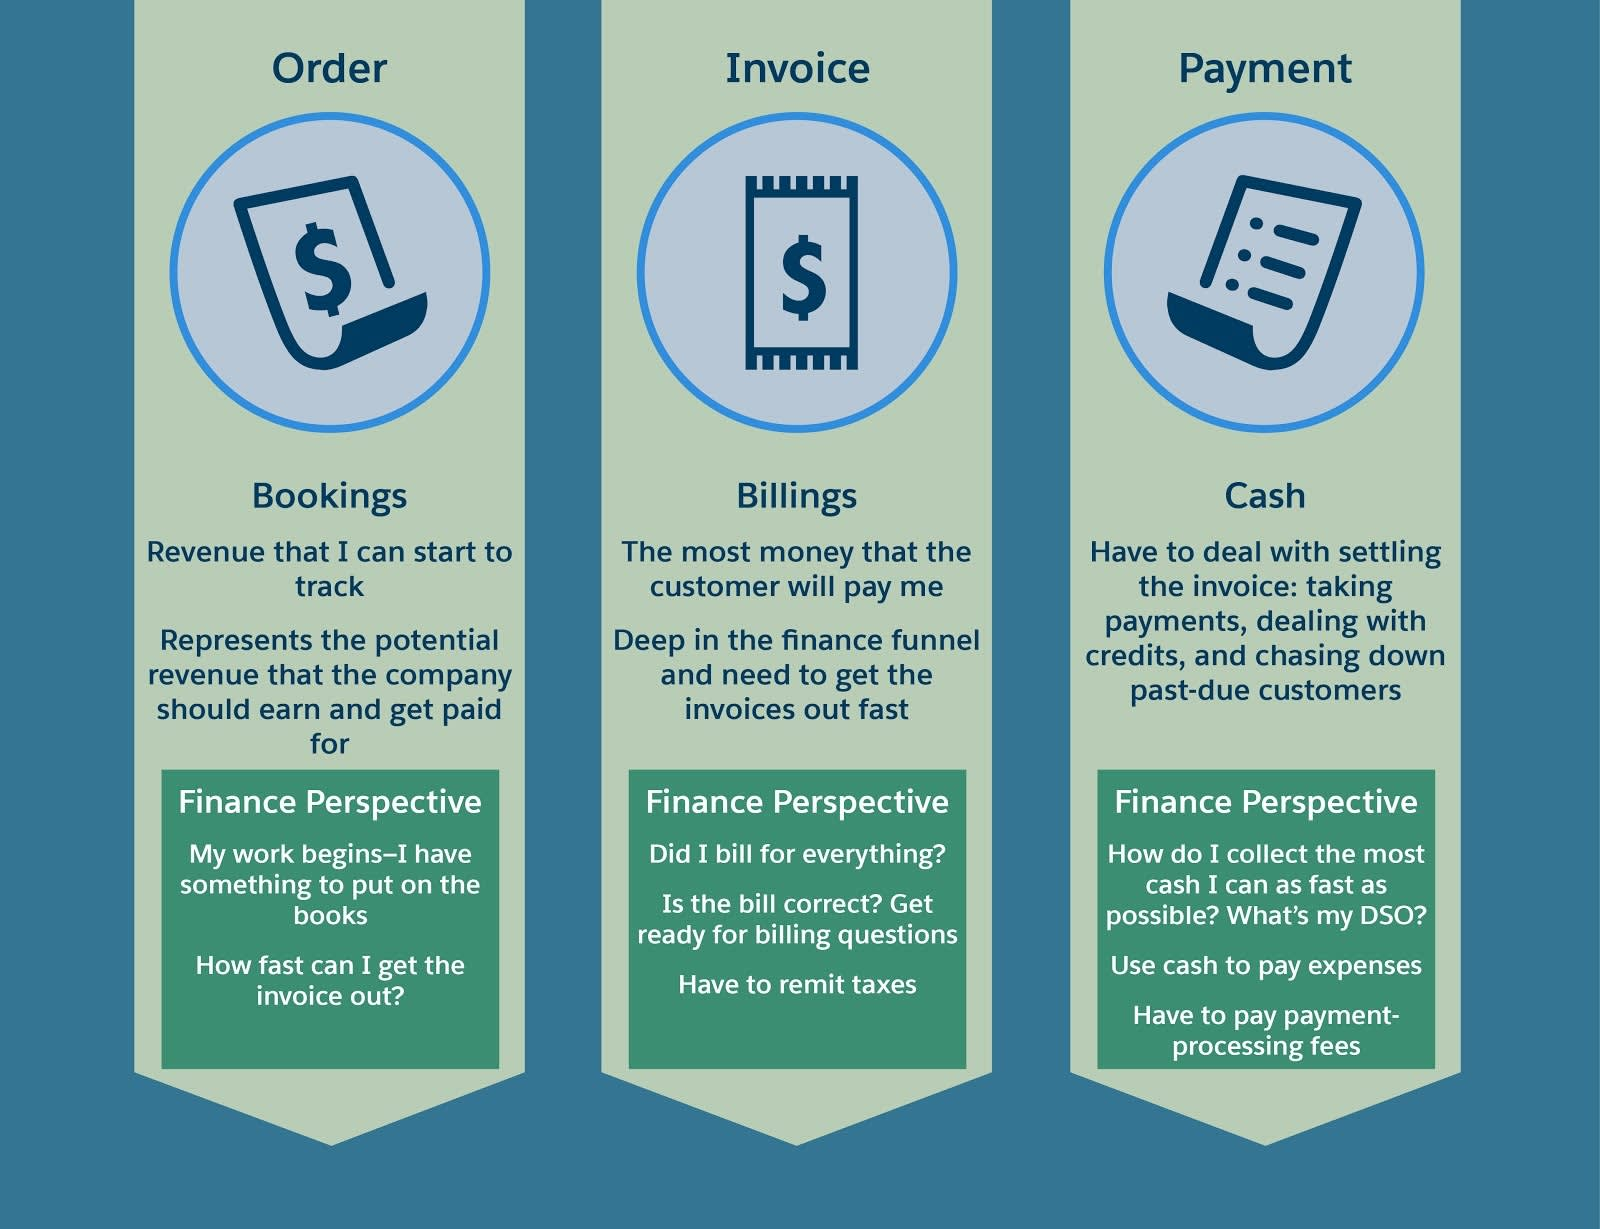 The Order, Invoice, and Payment stages are traditionally where finance teams get involved.